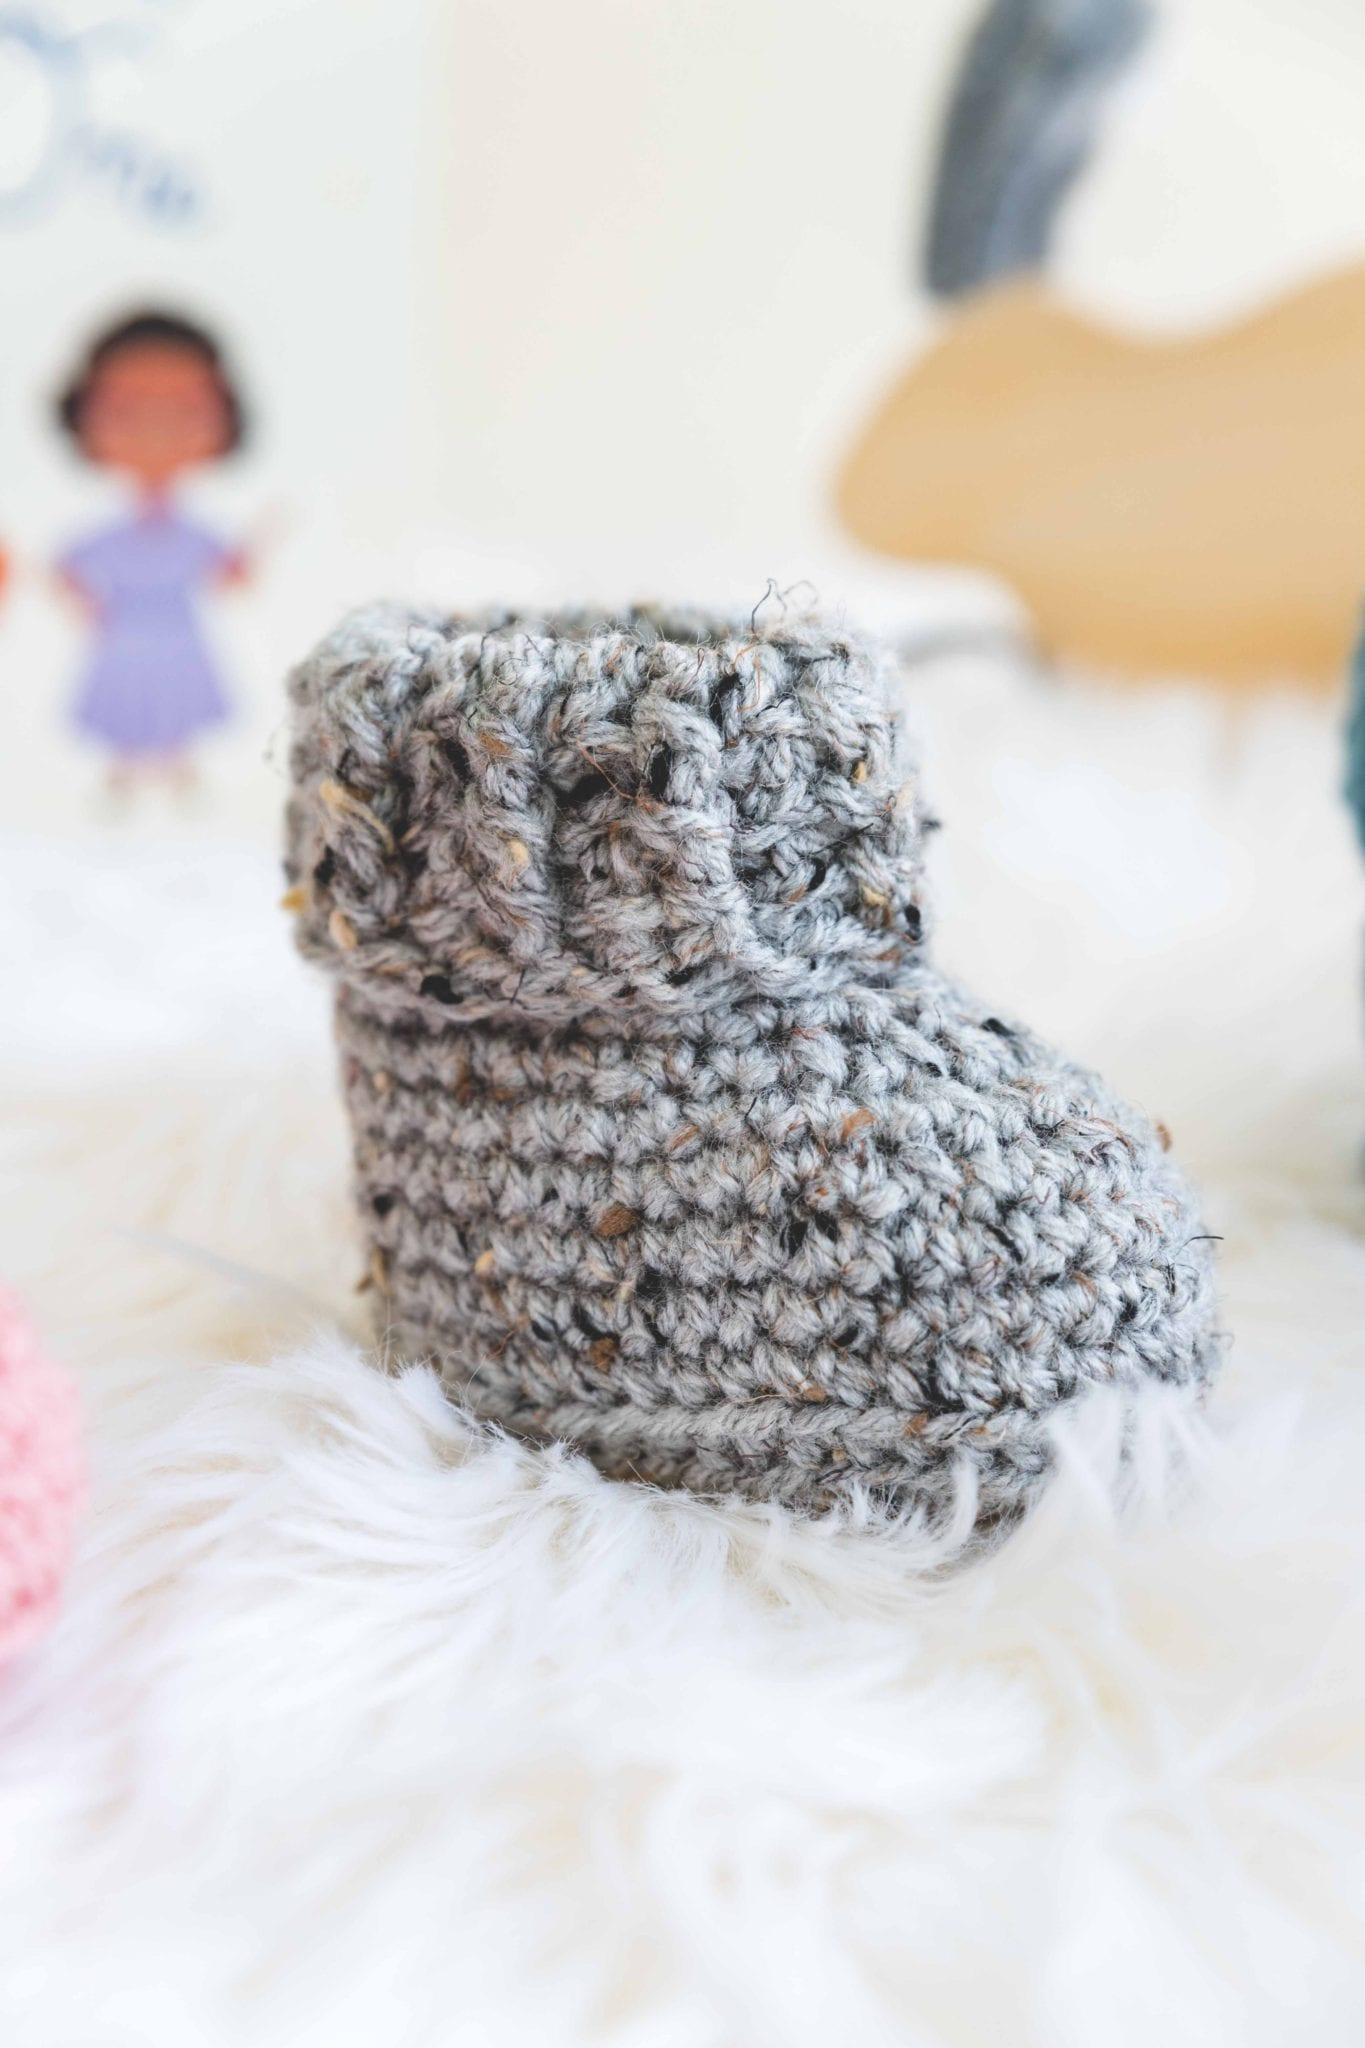 ac0fe3a7331a6 The Parker Crochet Baby Booties - Sewrella